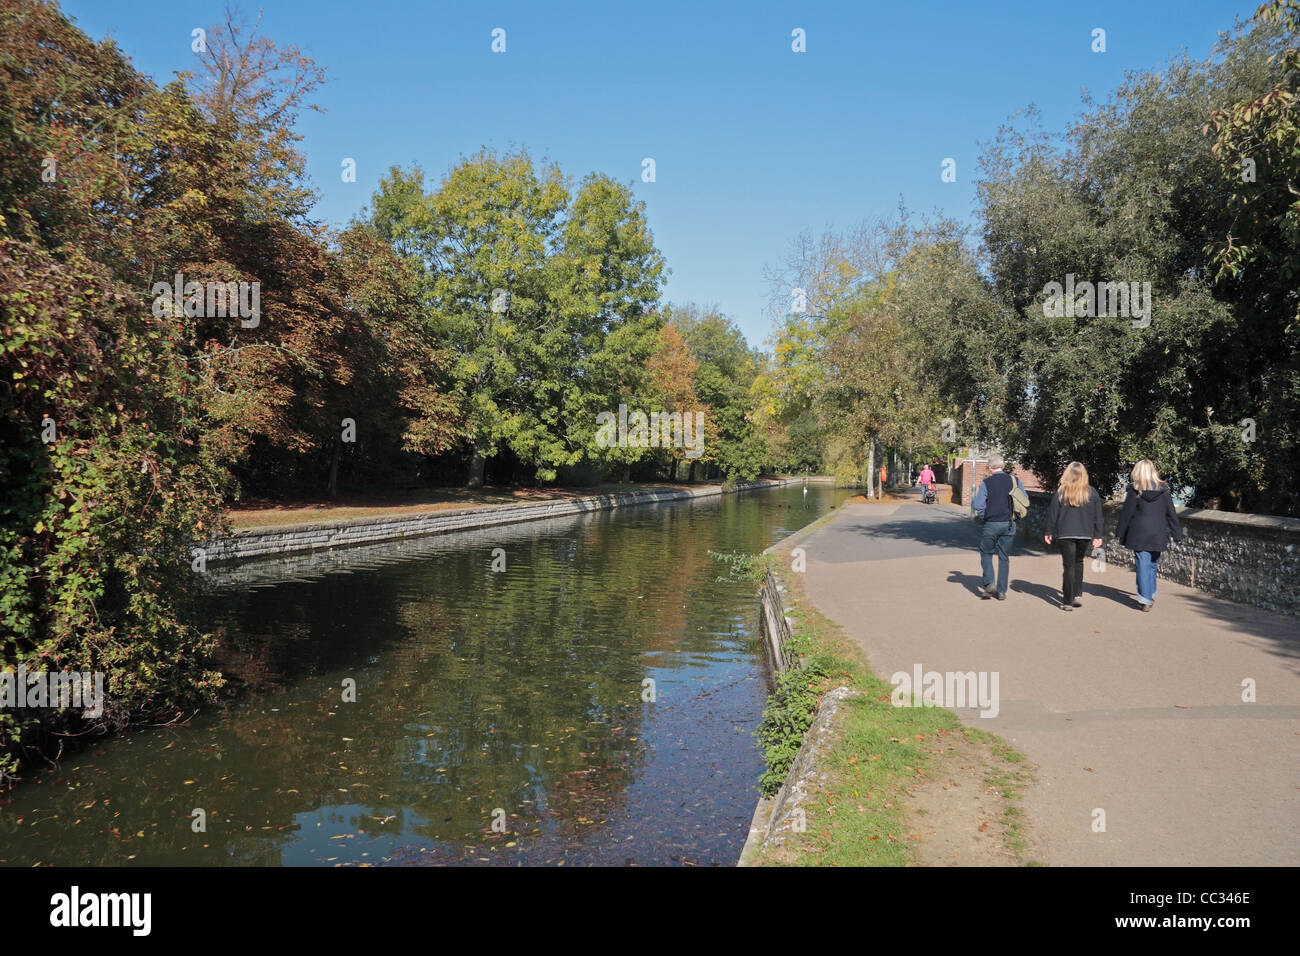 Canal path stock photos canal path stock images alamy Taunton swimming pool station road